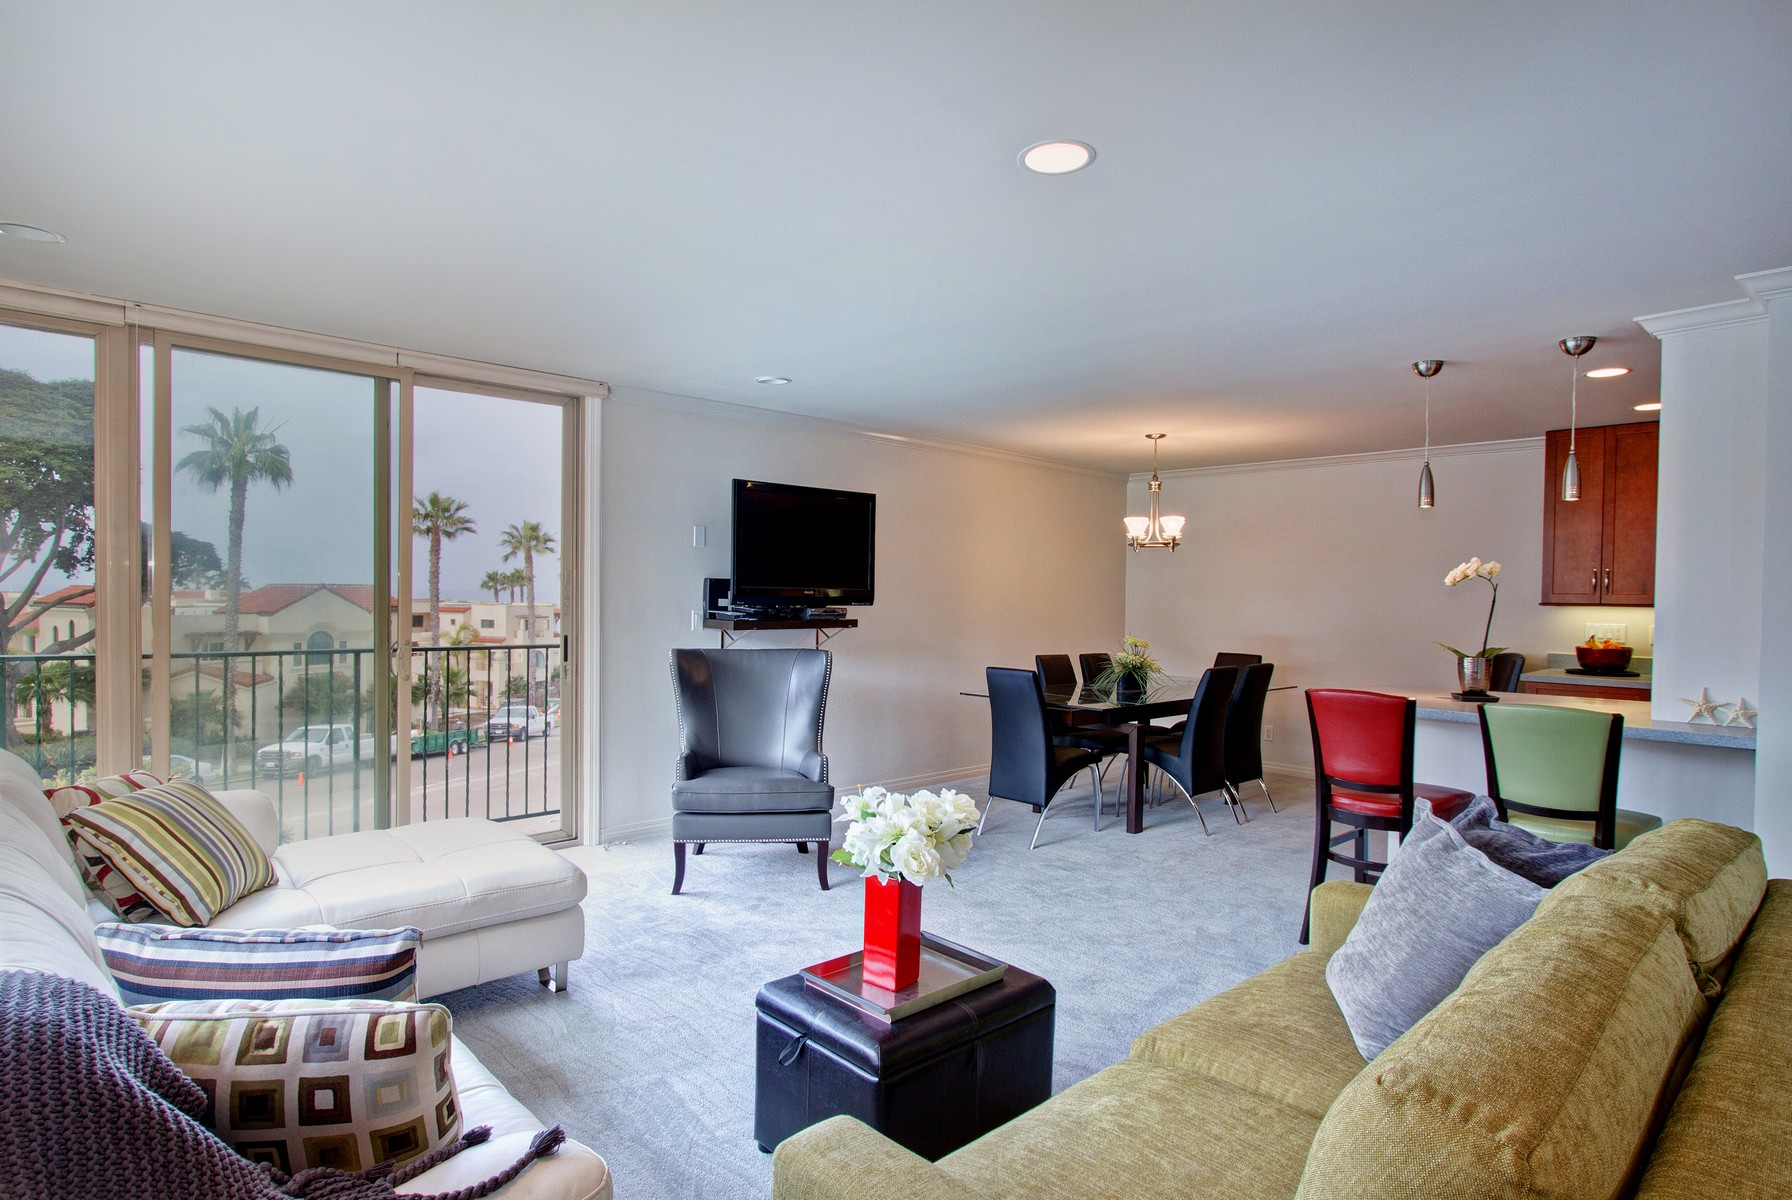 Condominium for Sale at Coast Regency 909 Coast Blvd Unit 6 La Jolla, California 92037 United States